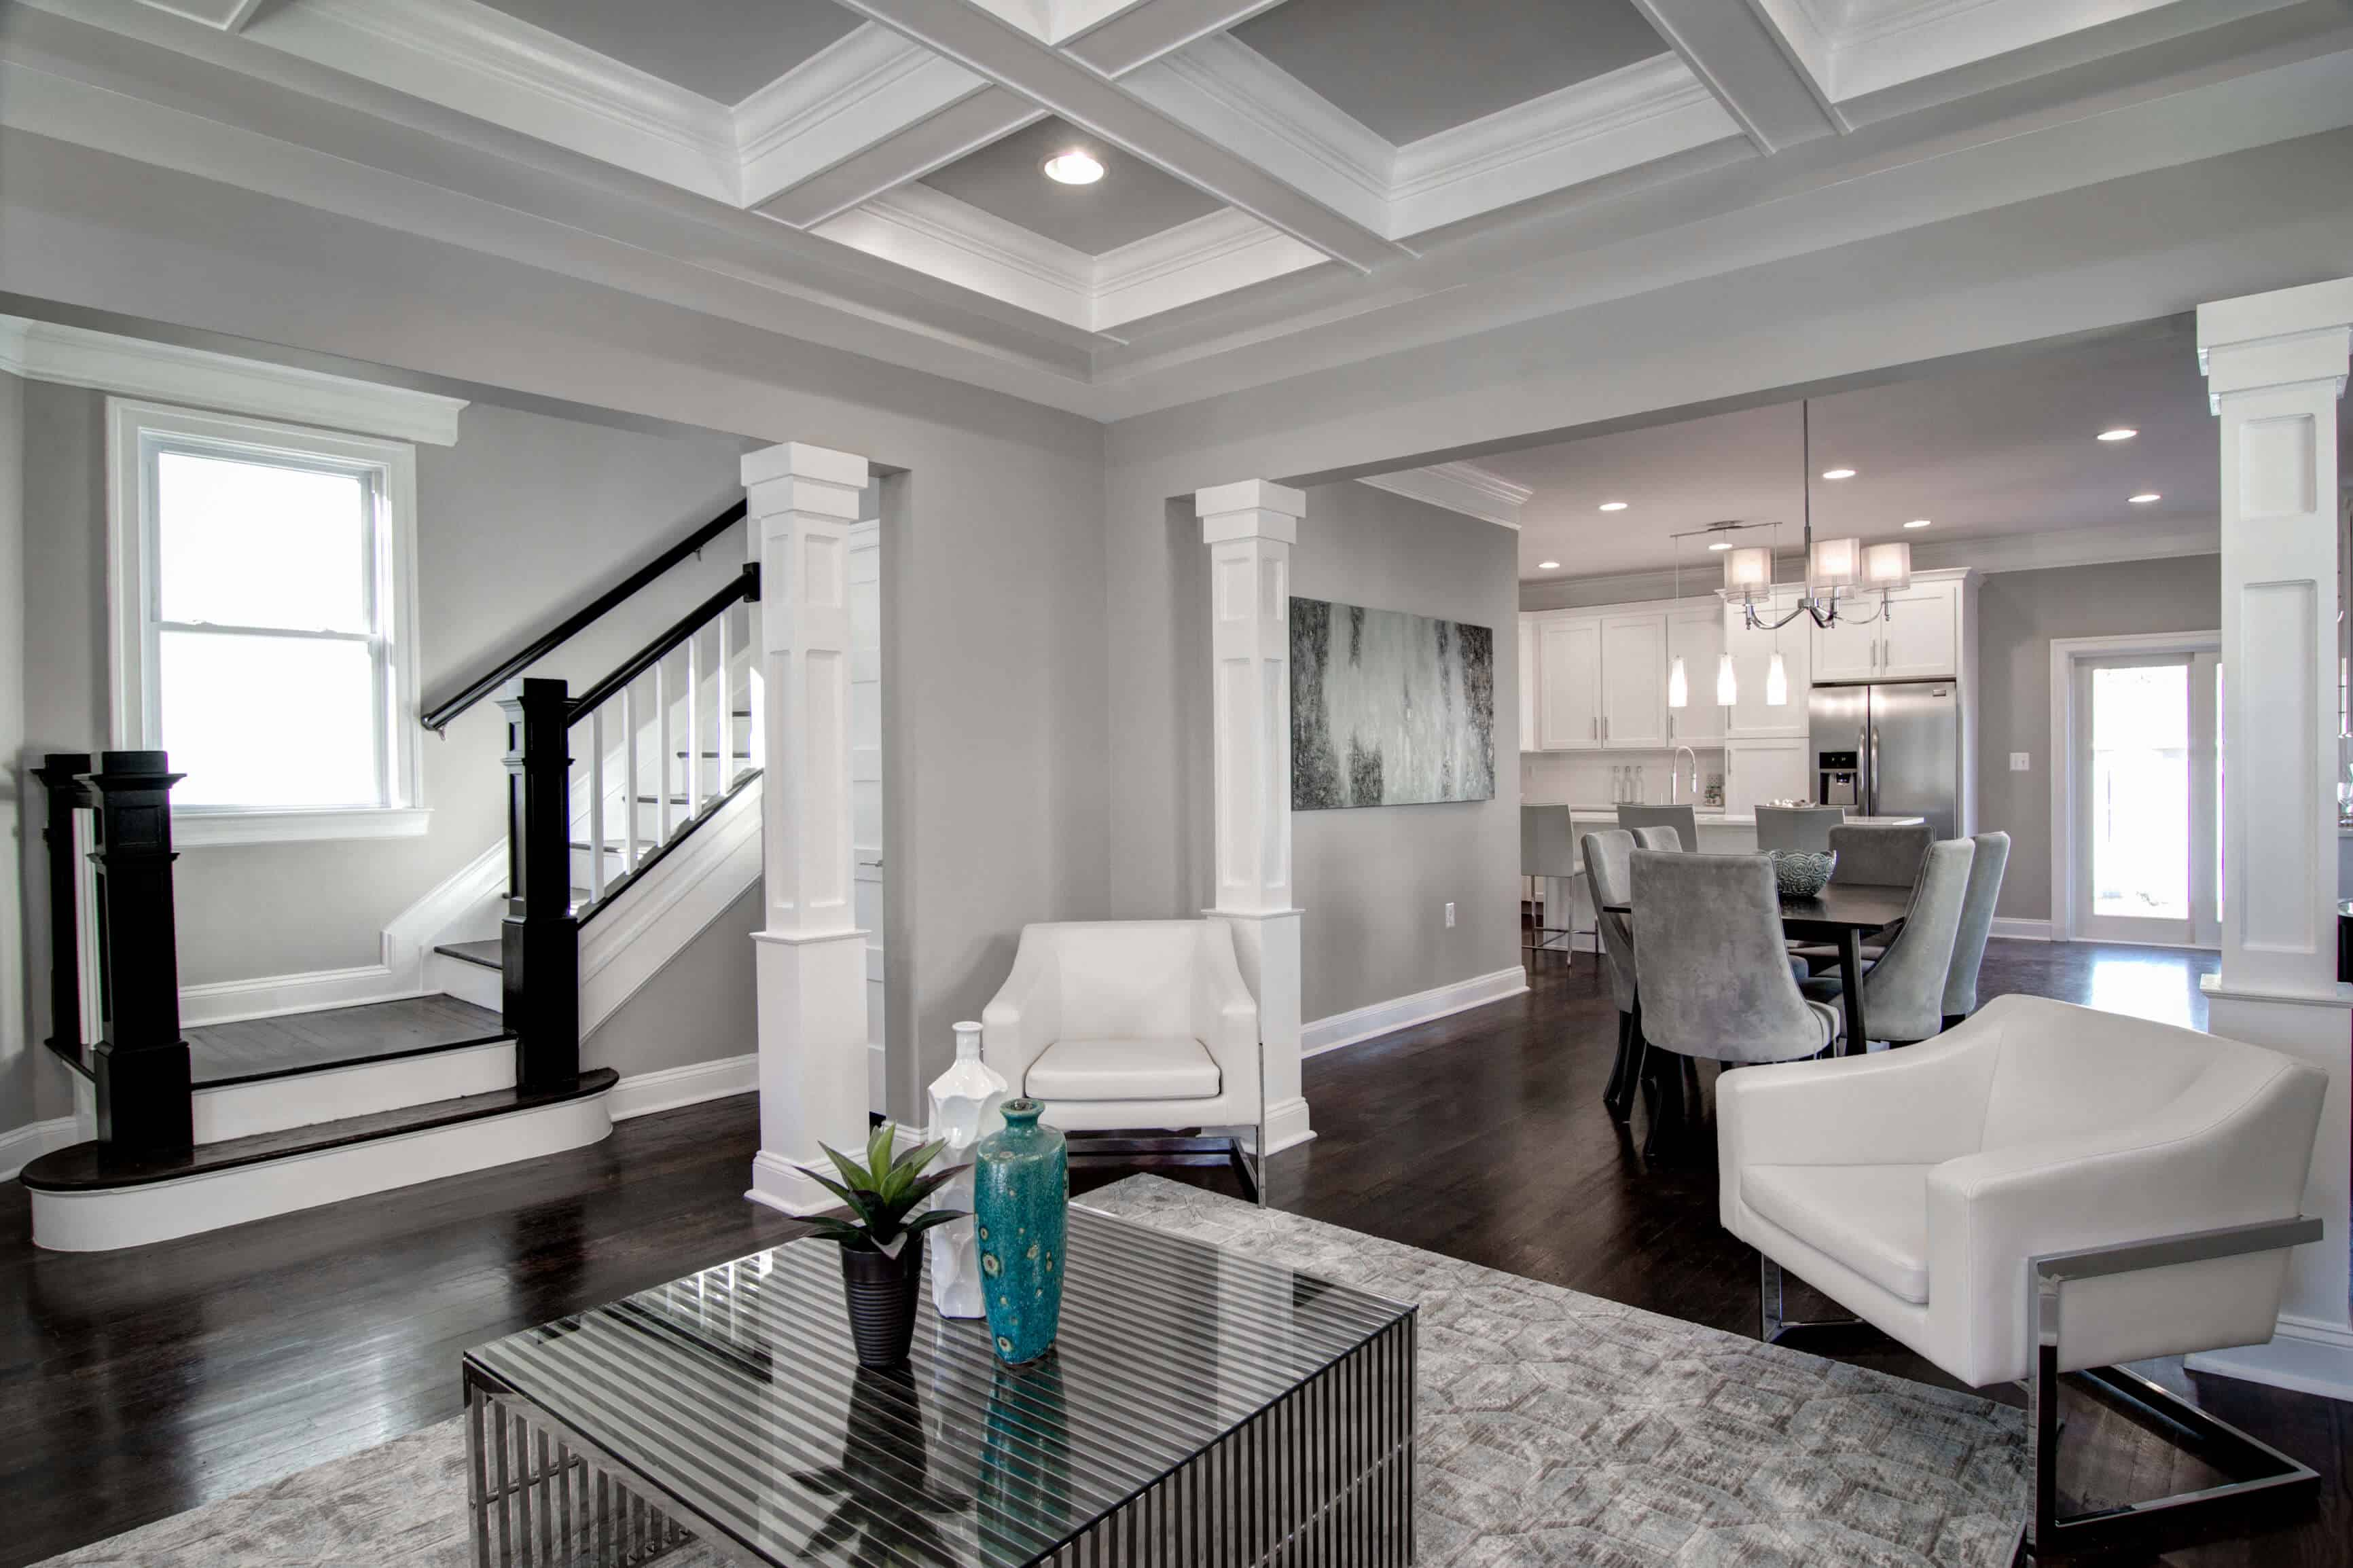 Ceilings For Houses